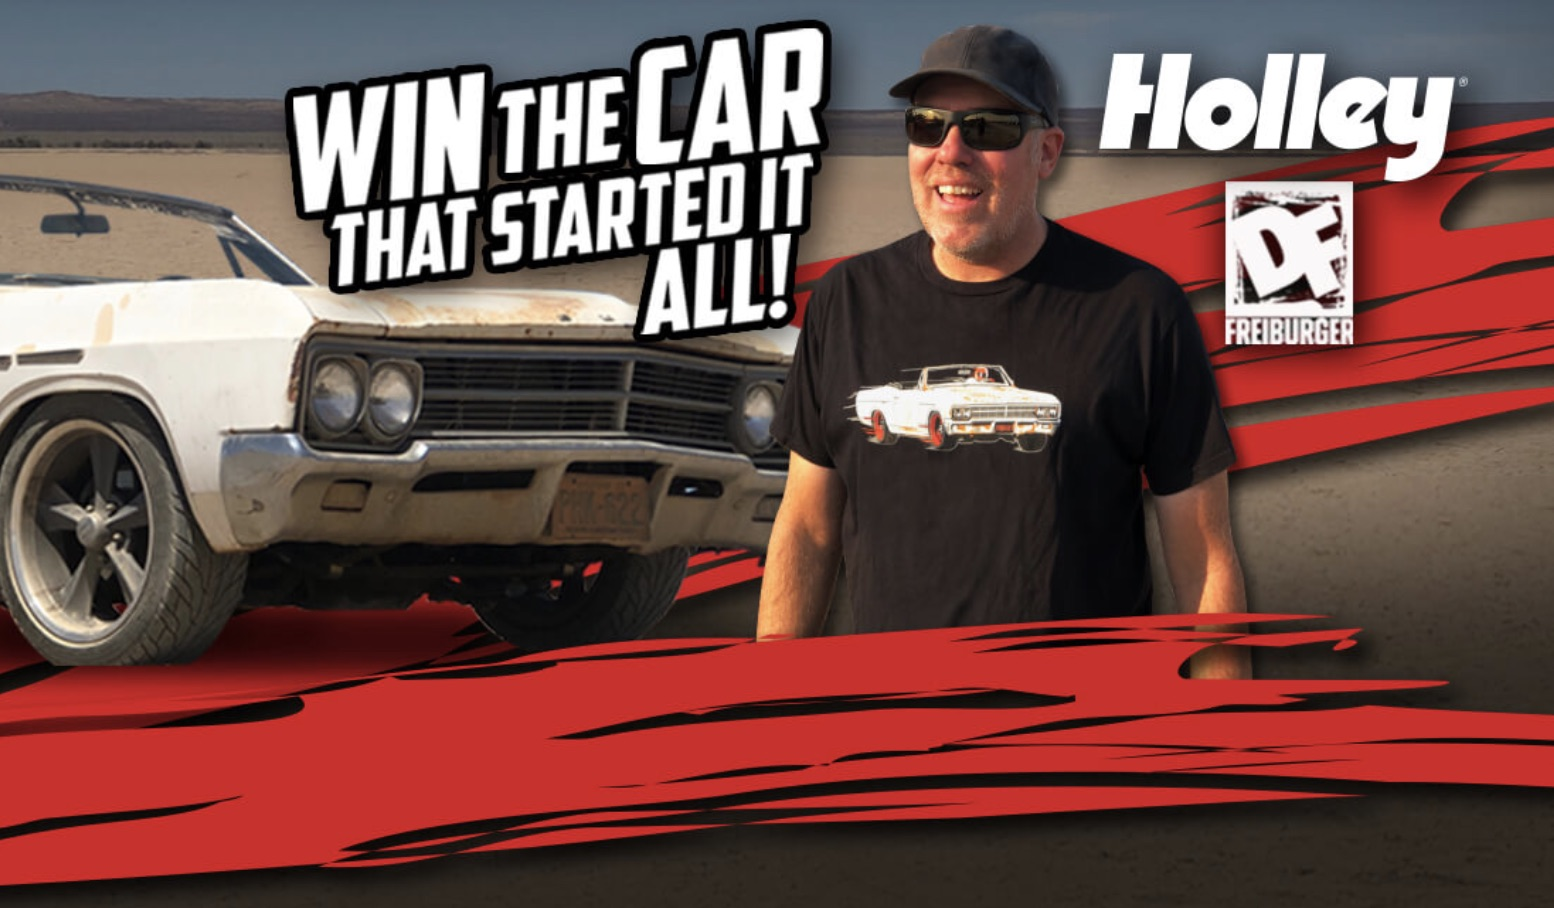 Win A Car You'd Really Want: Holley Is Giving Away The 1966 Buick Special Convertible That Started Roadkill